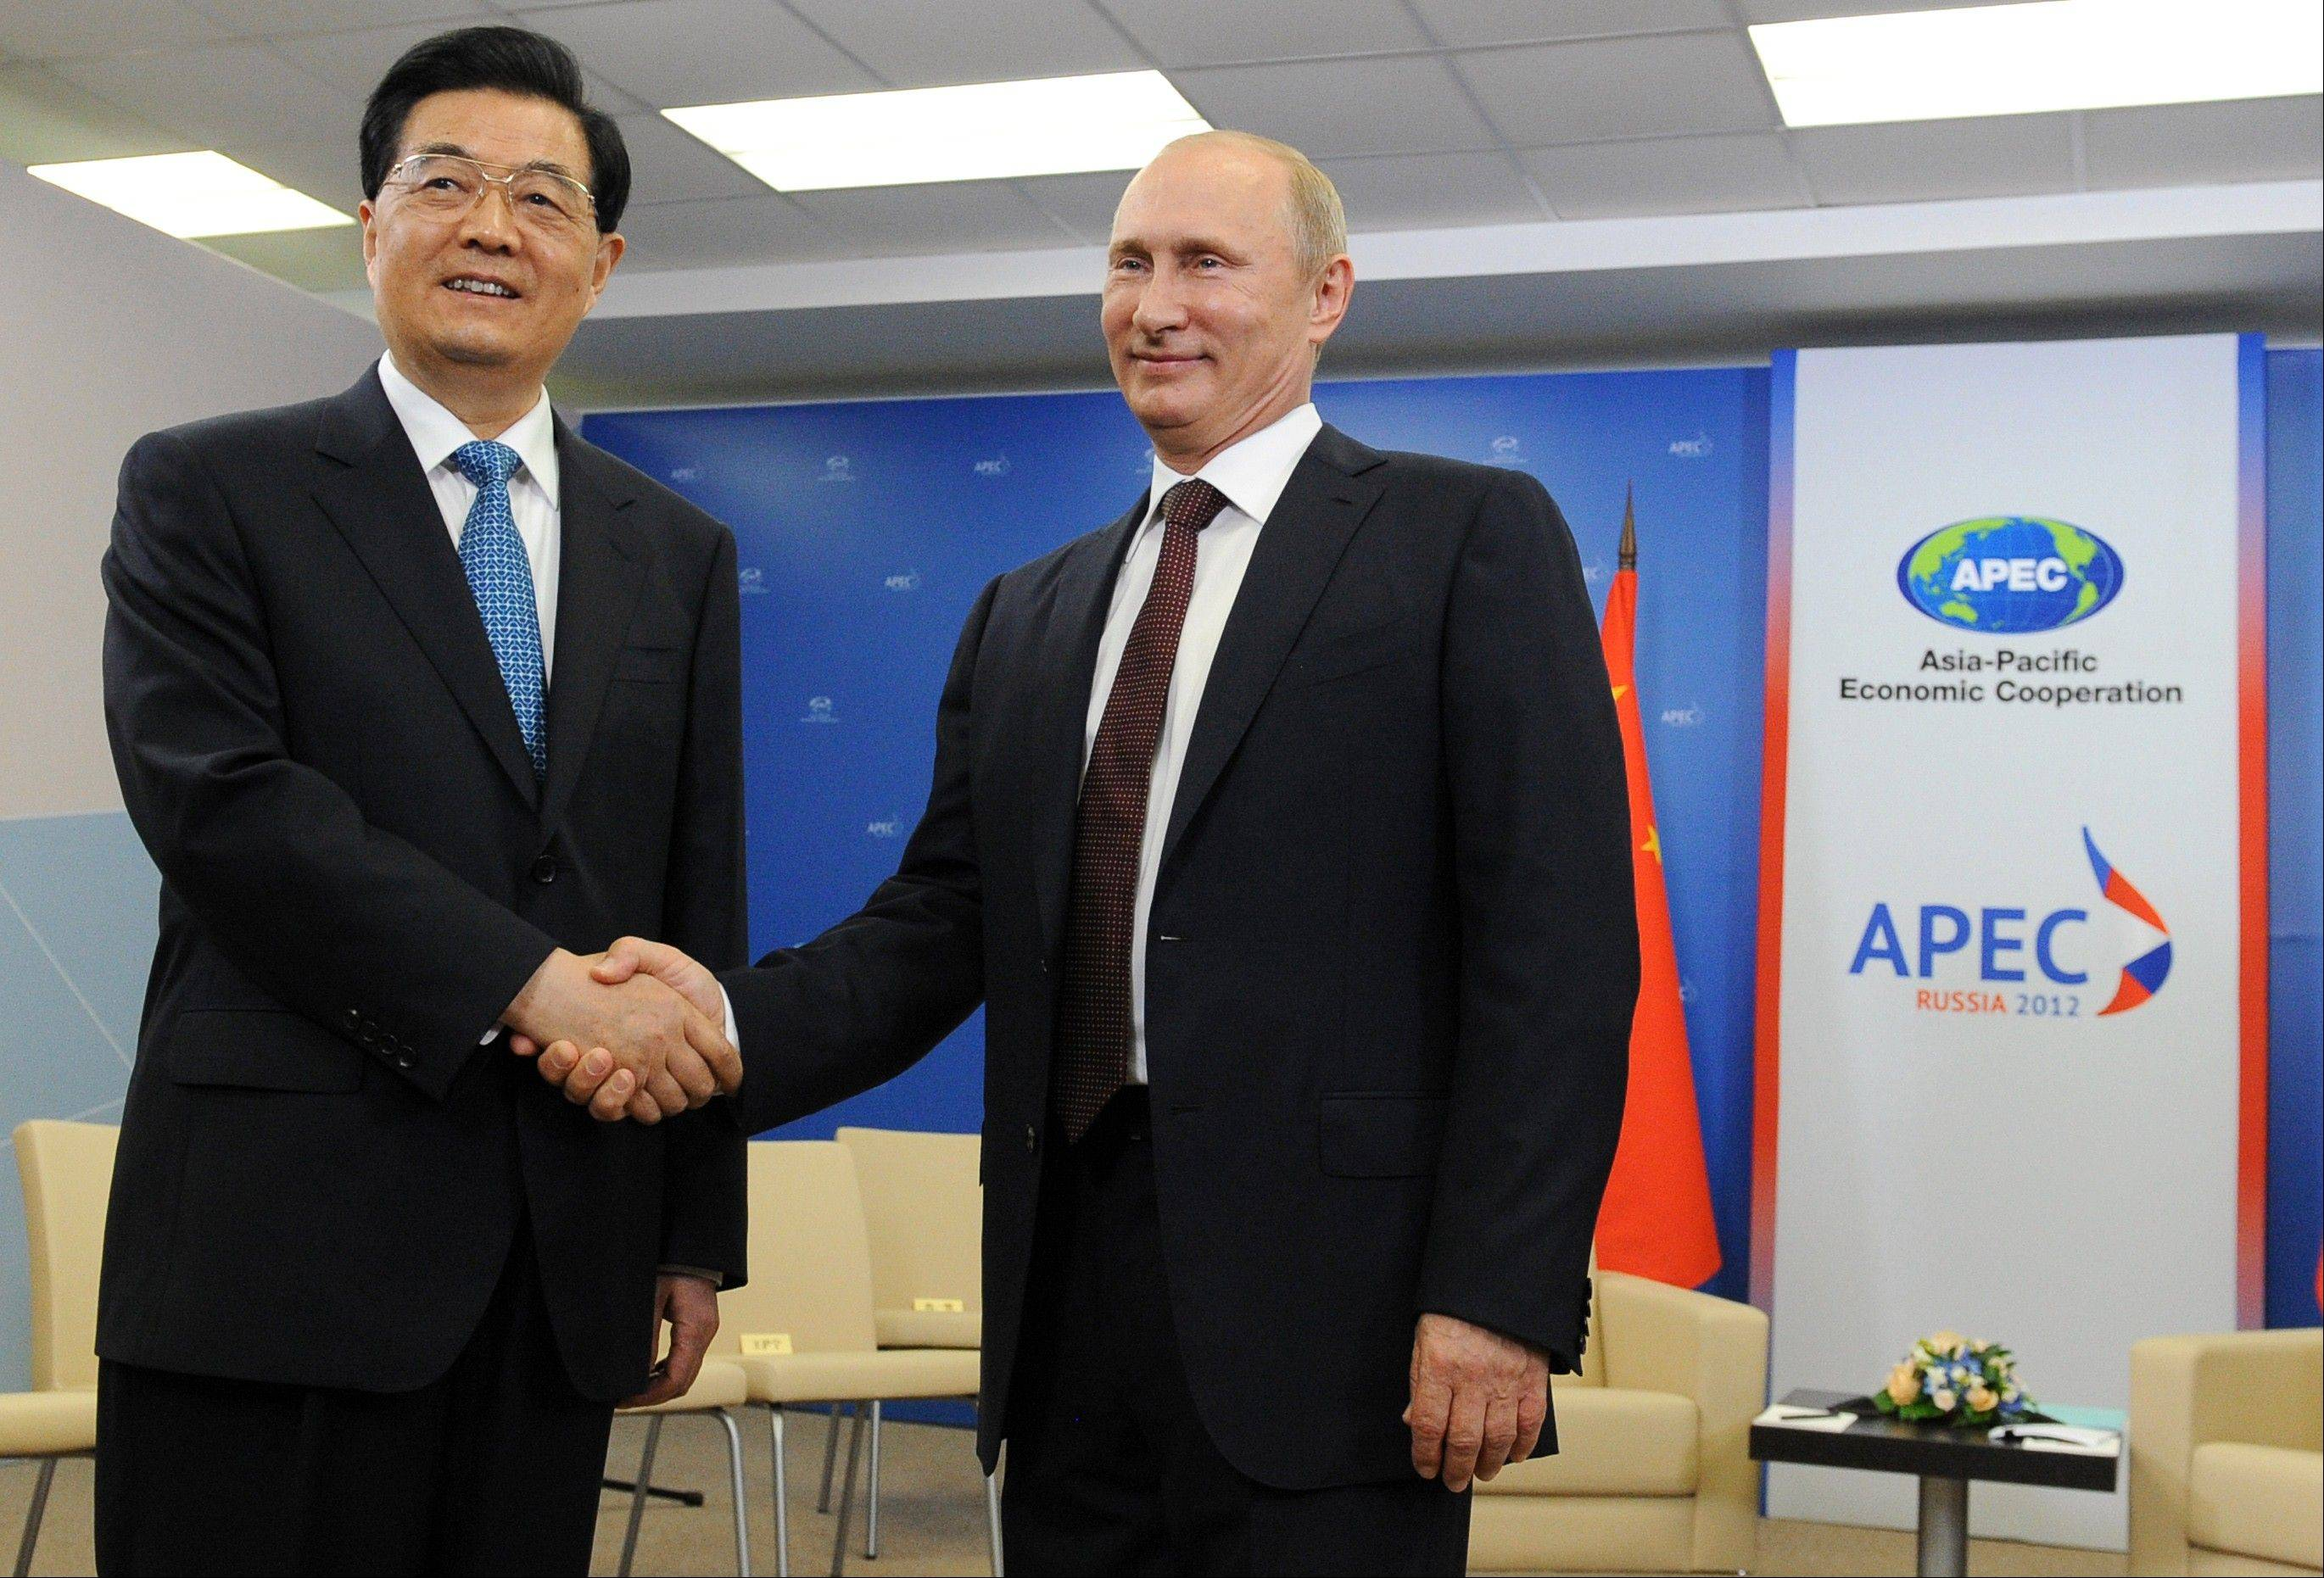 In this photo released by APEC, Russian President Vladimir Putin, right, meets with Chinese President Hu Jintao Friday during the APEC summit in Vladivostok, Russia.